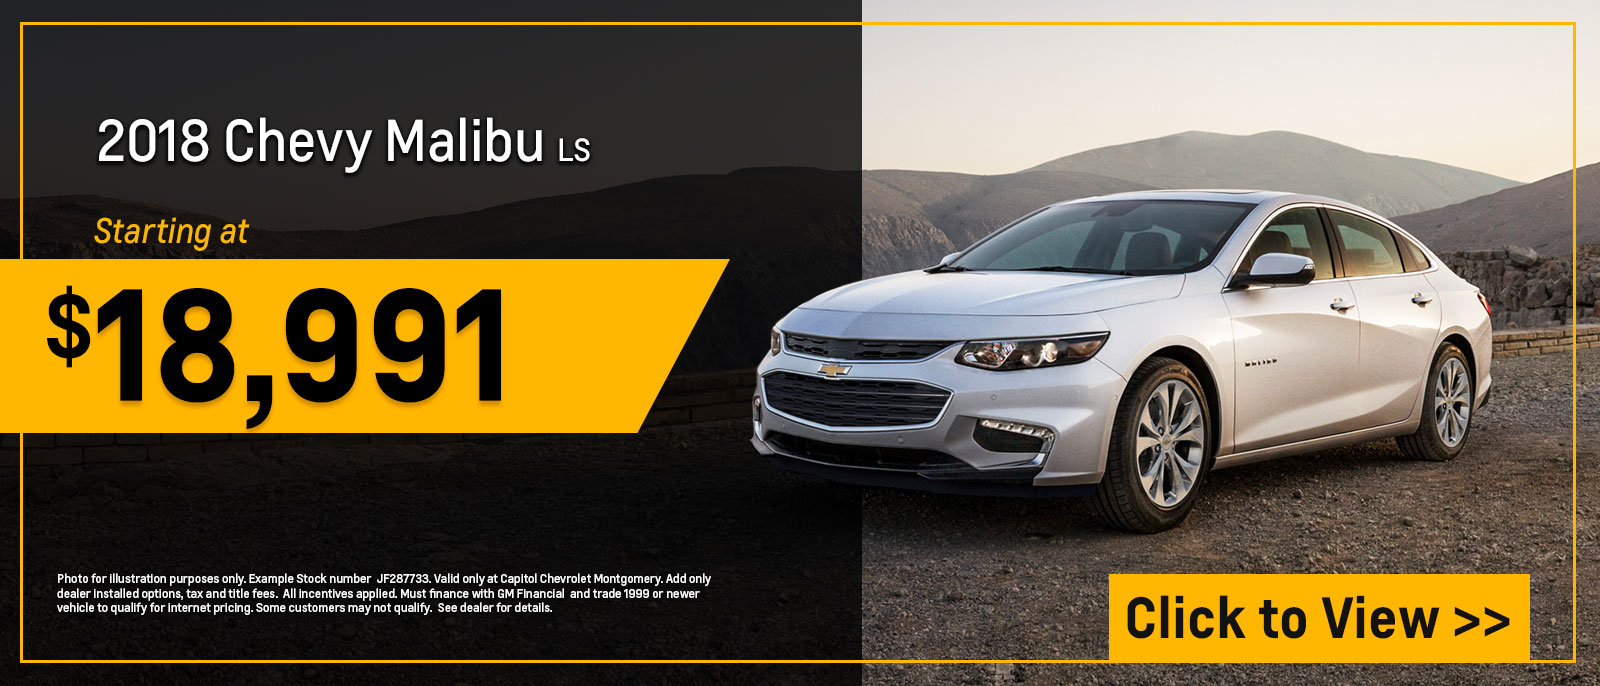 Capitol Chevrolet Montgomery New Chevy Used Car Dealership Jpg 1199x514 Capitol  Chevrolet Montgomery Alabama